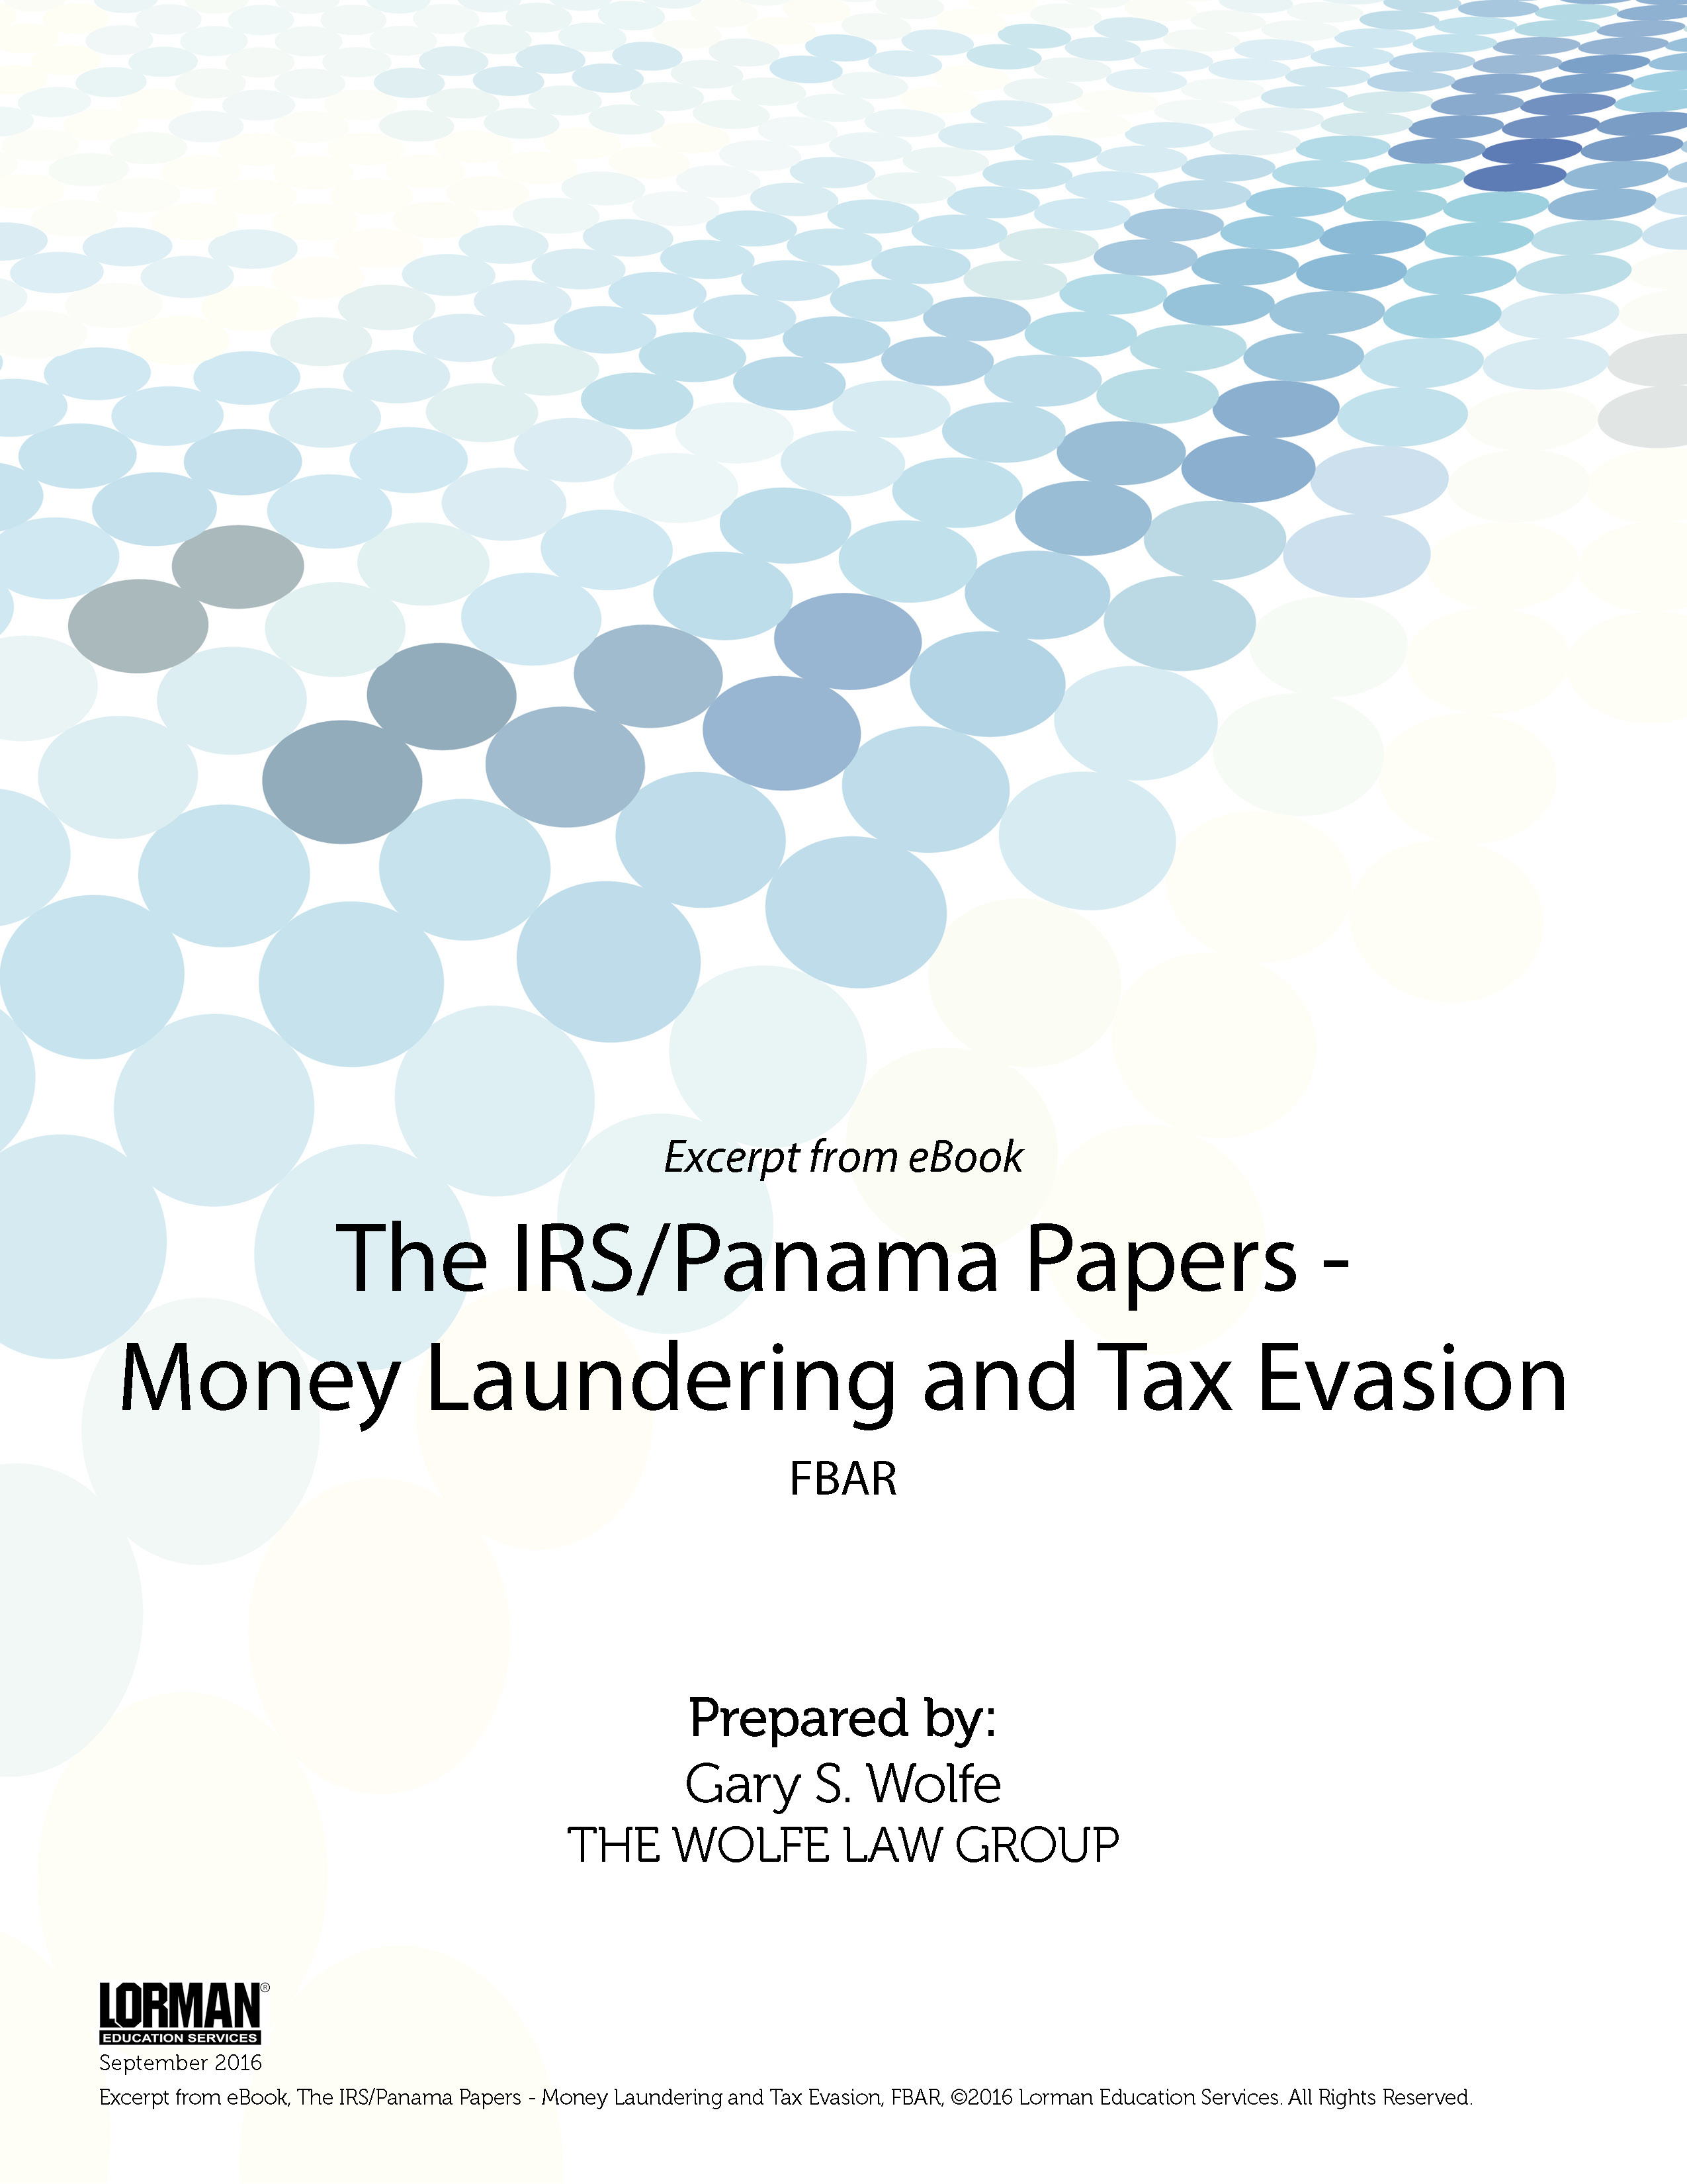 The IRS-Panama Papers - Money Laundering and Tax Evasion: FBAR